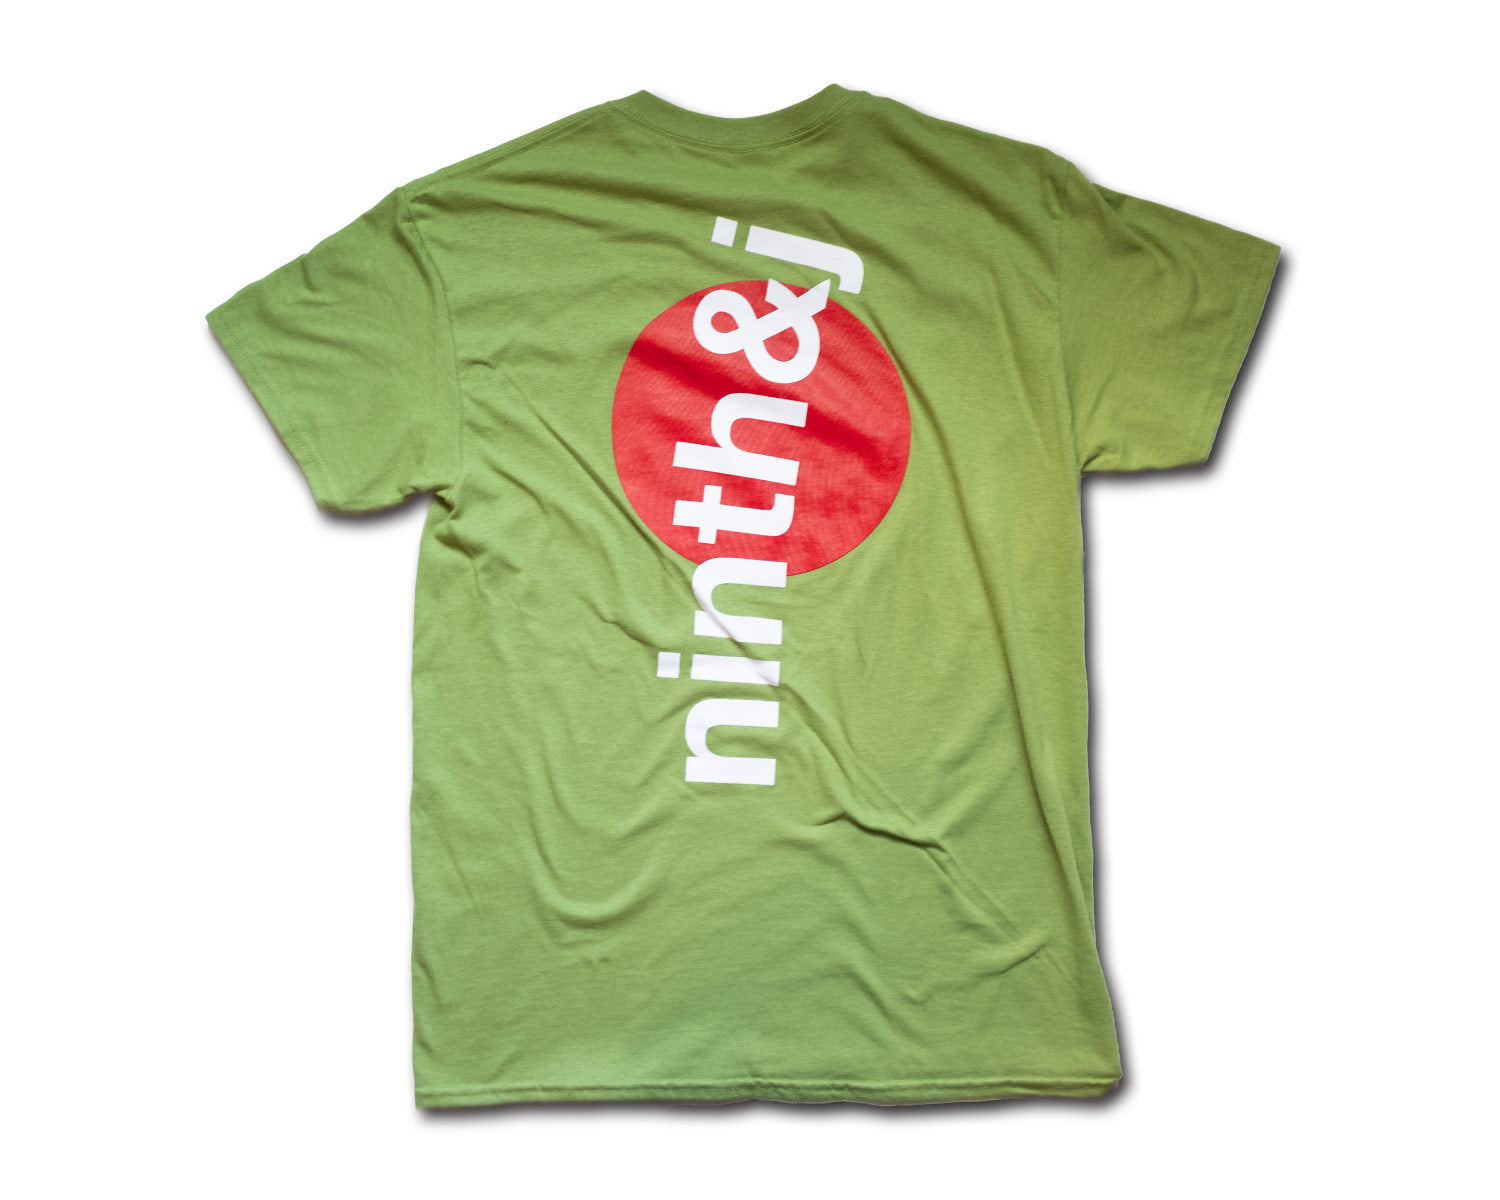 rising sun tee in green